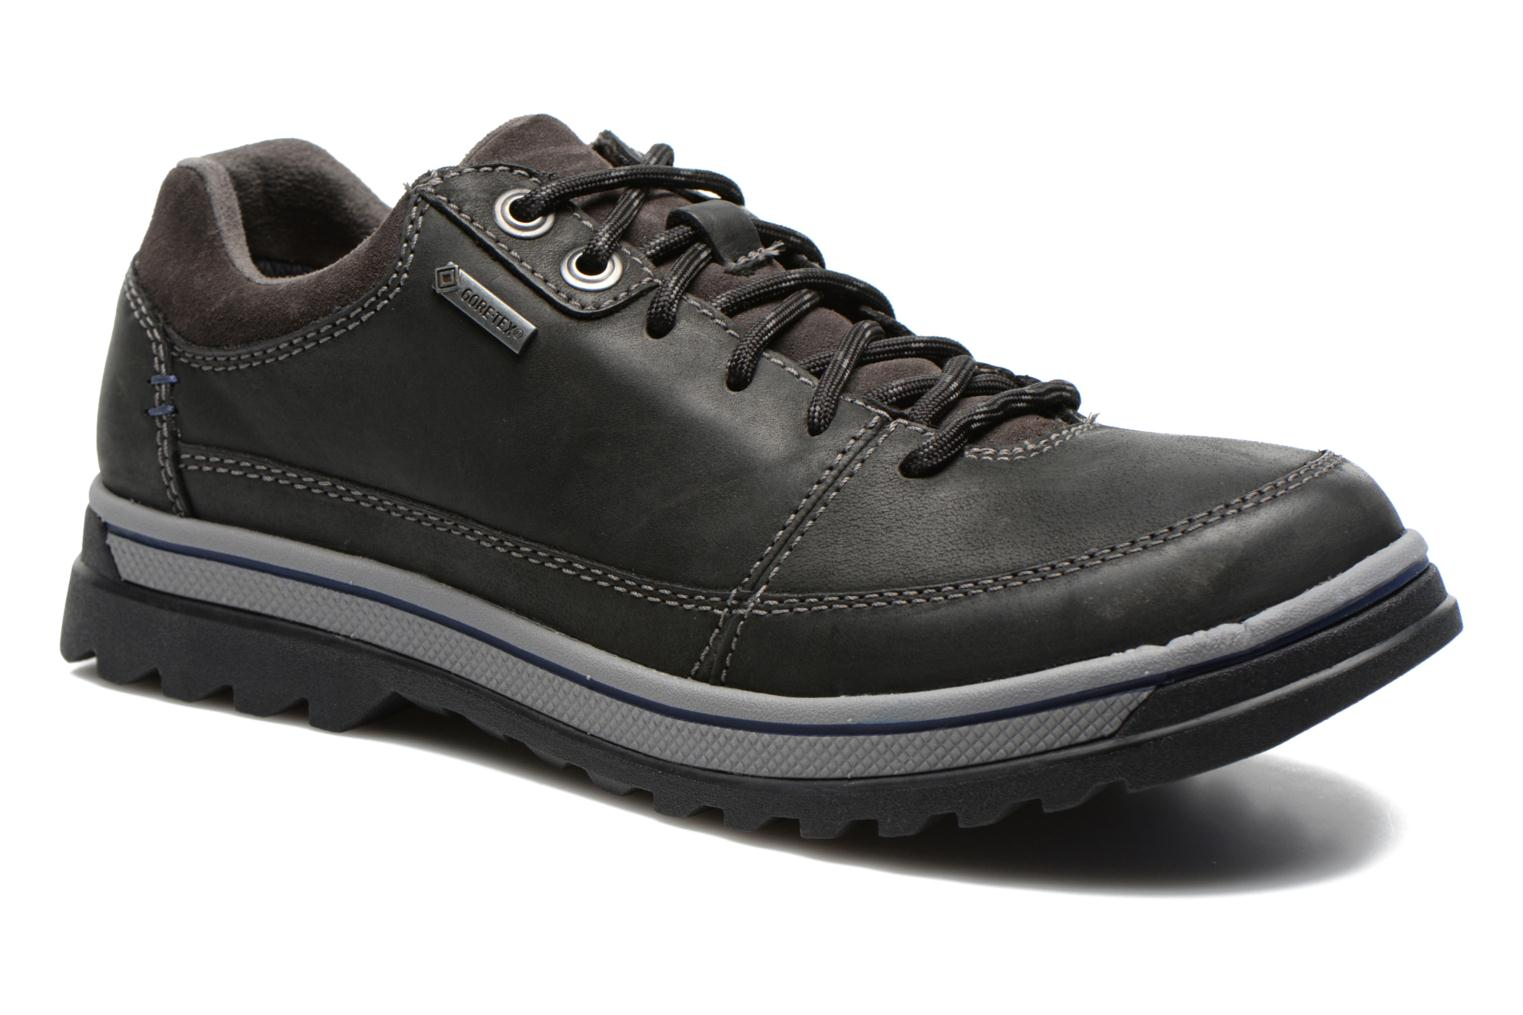 Sneakers RipwayEdge GTX by Clarks